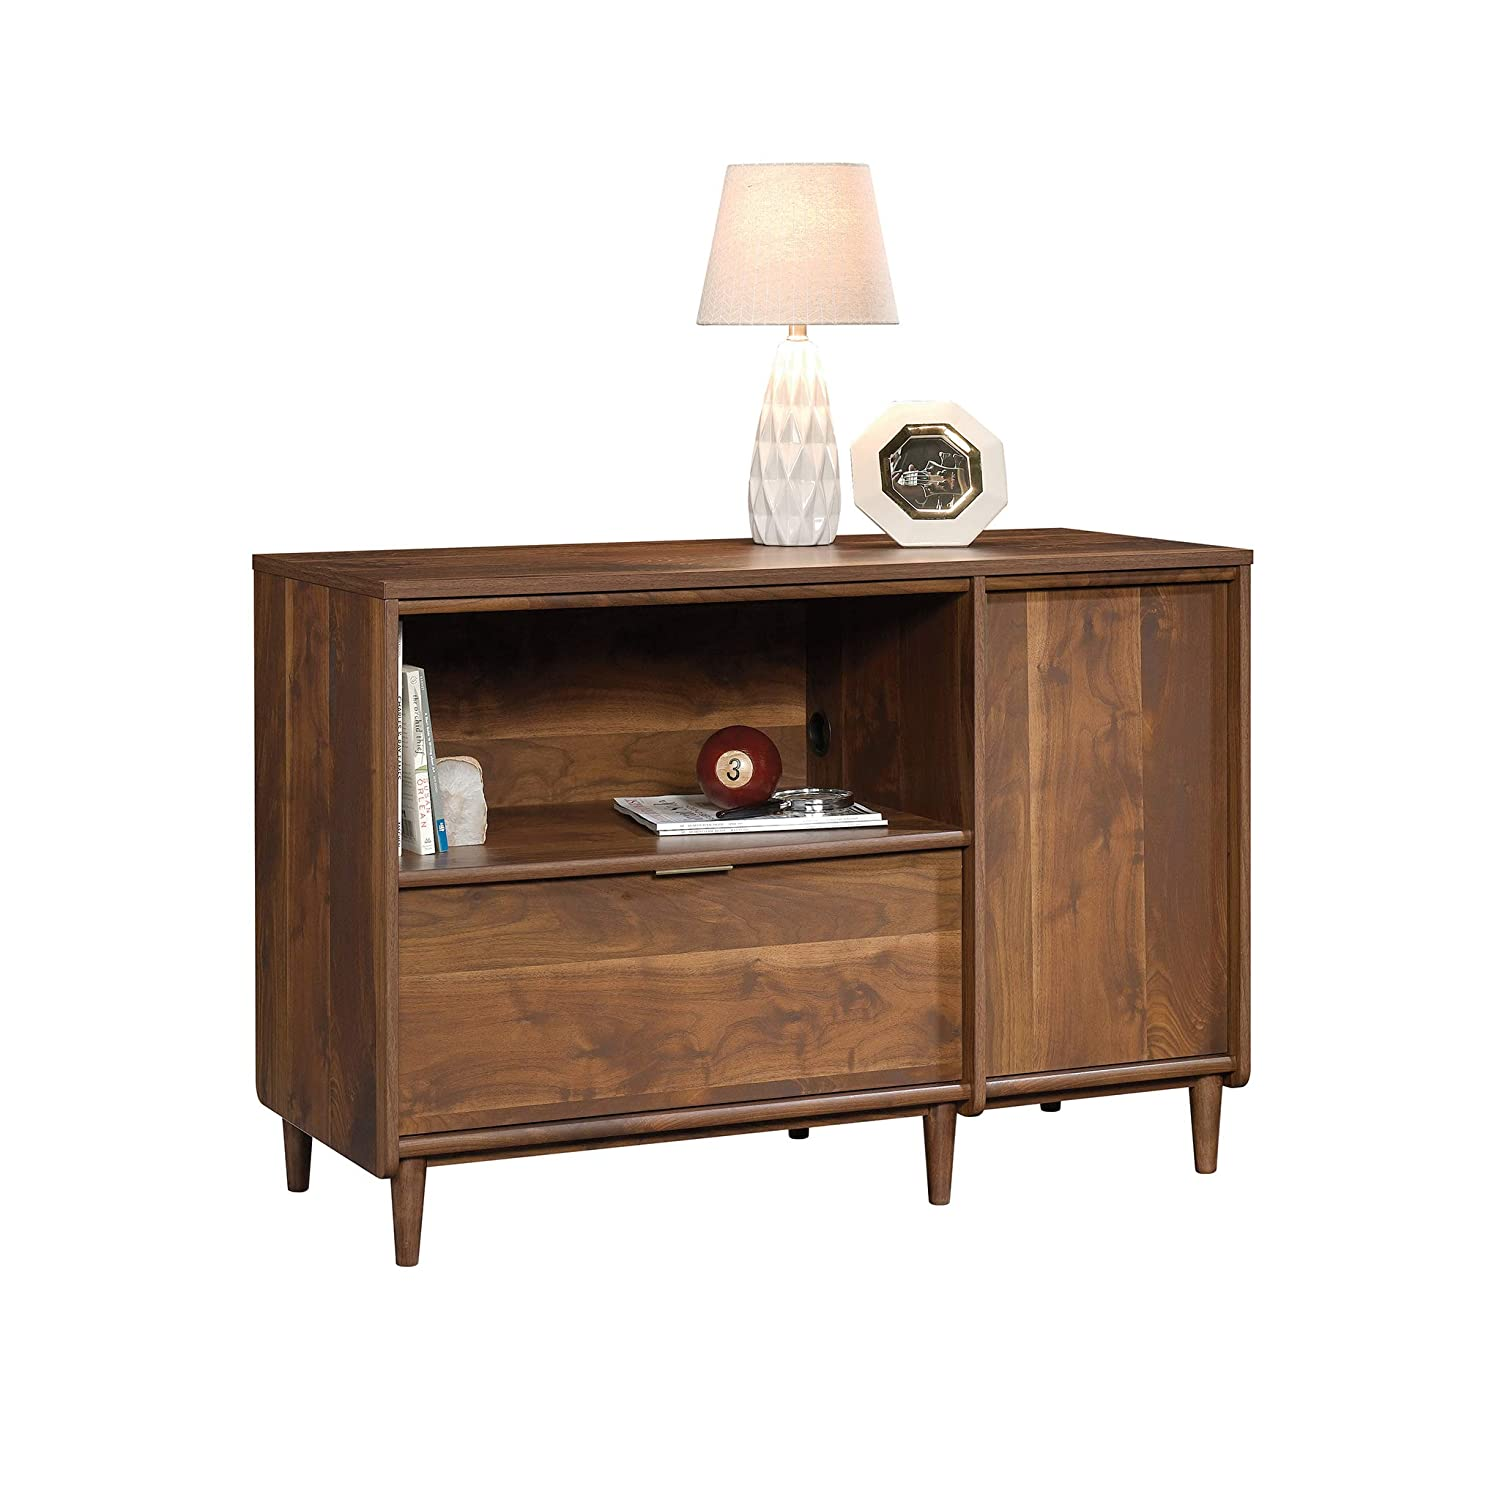 Sauder 421317 Clifford Place Credenza, For TV s up to 46 , Grand Walnut finish